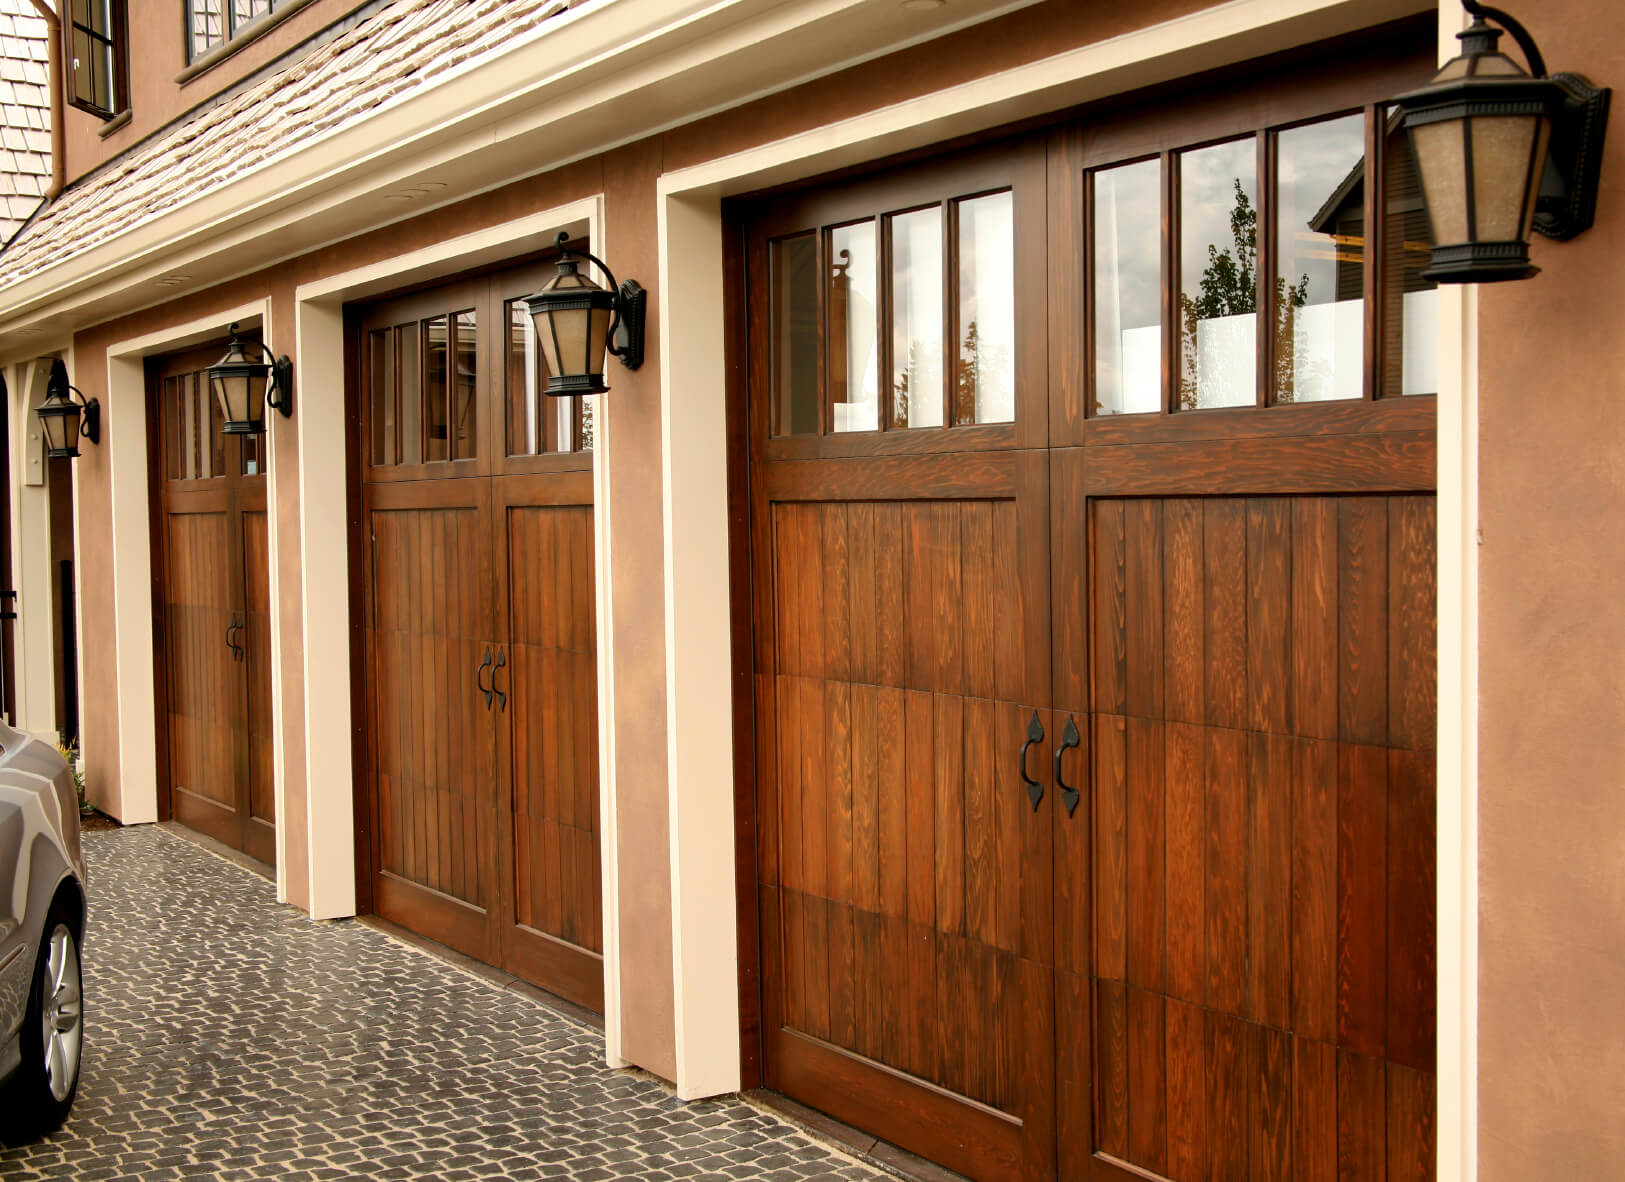 What Causes Garage Doors to Become Off-Balance?